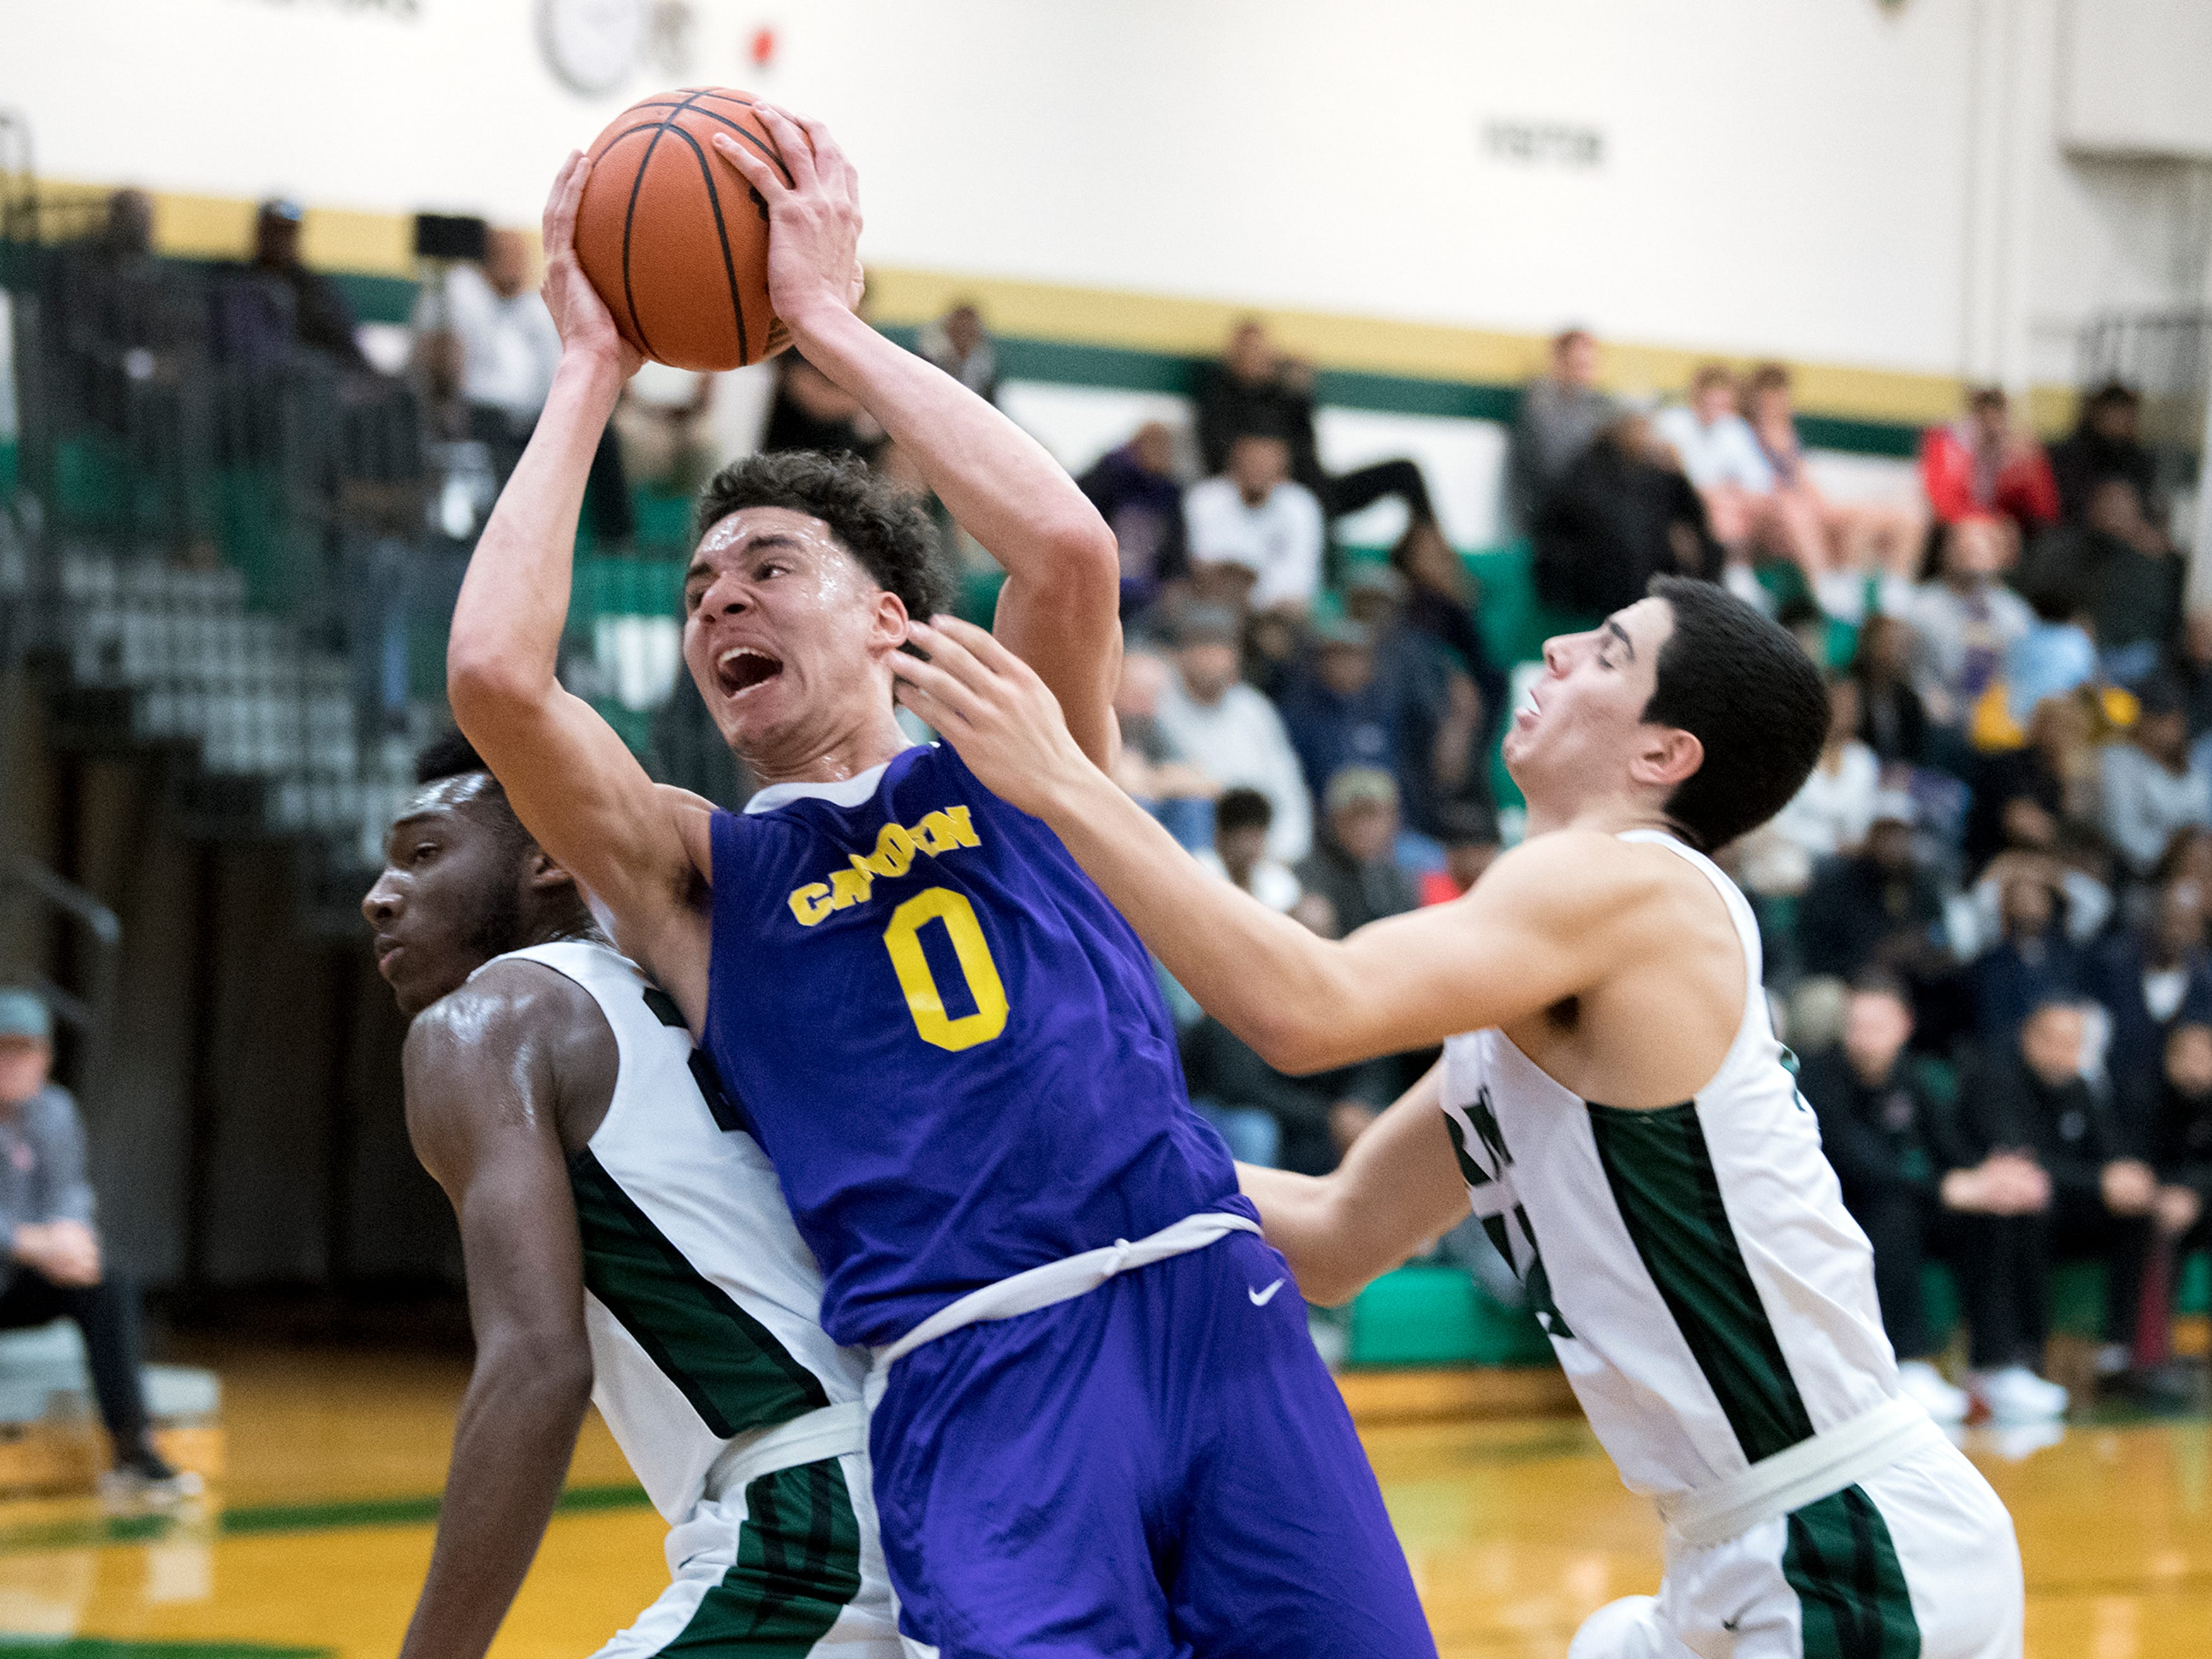 Camden's Lance Ware (0) pushes between Camden Catholic defenders Thursday, Feb. 21, 2019 at Camden Catholic High School in Cherry Hill, N.J. Camden Catholic won 57-54.